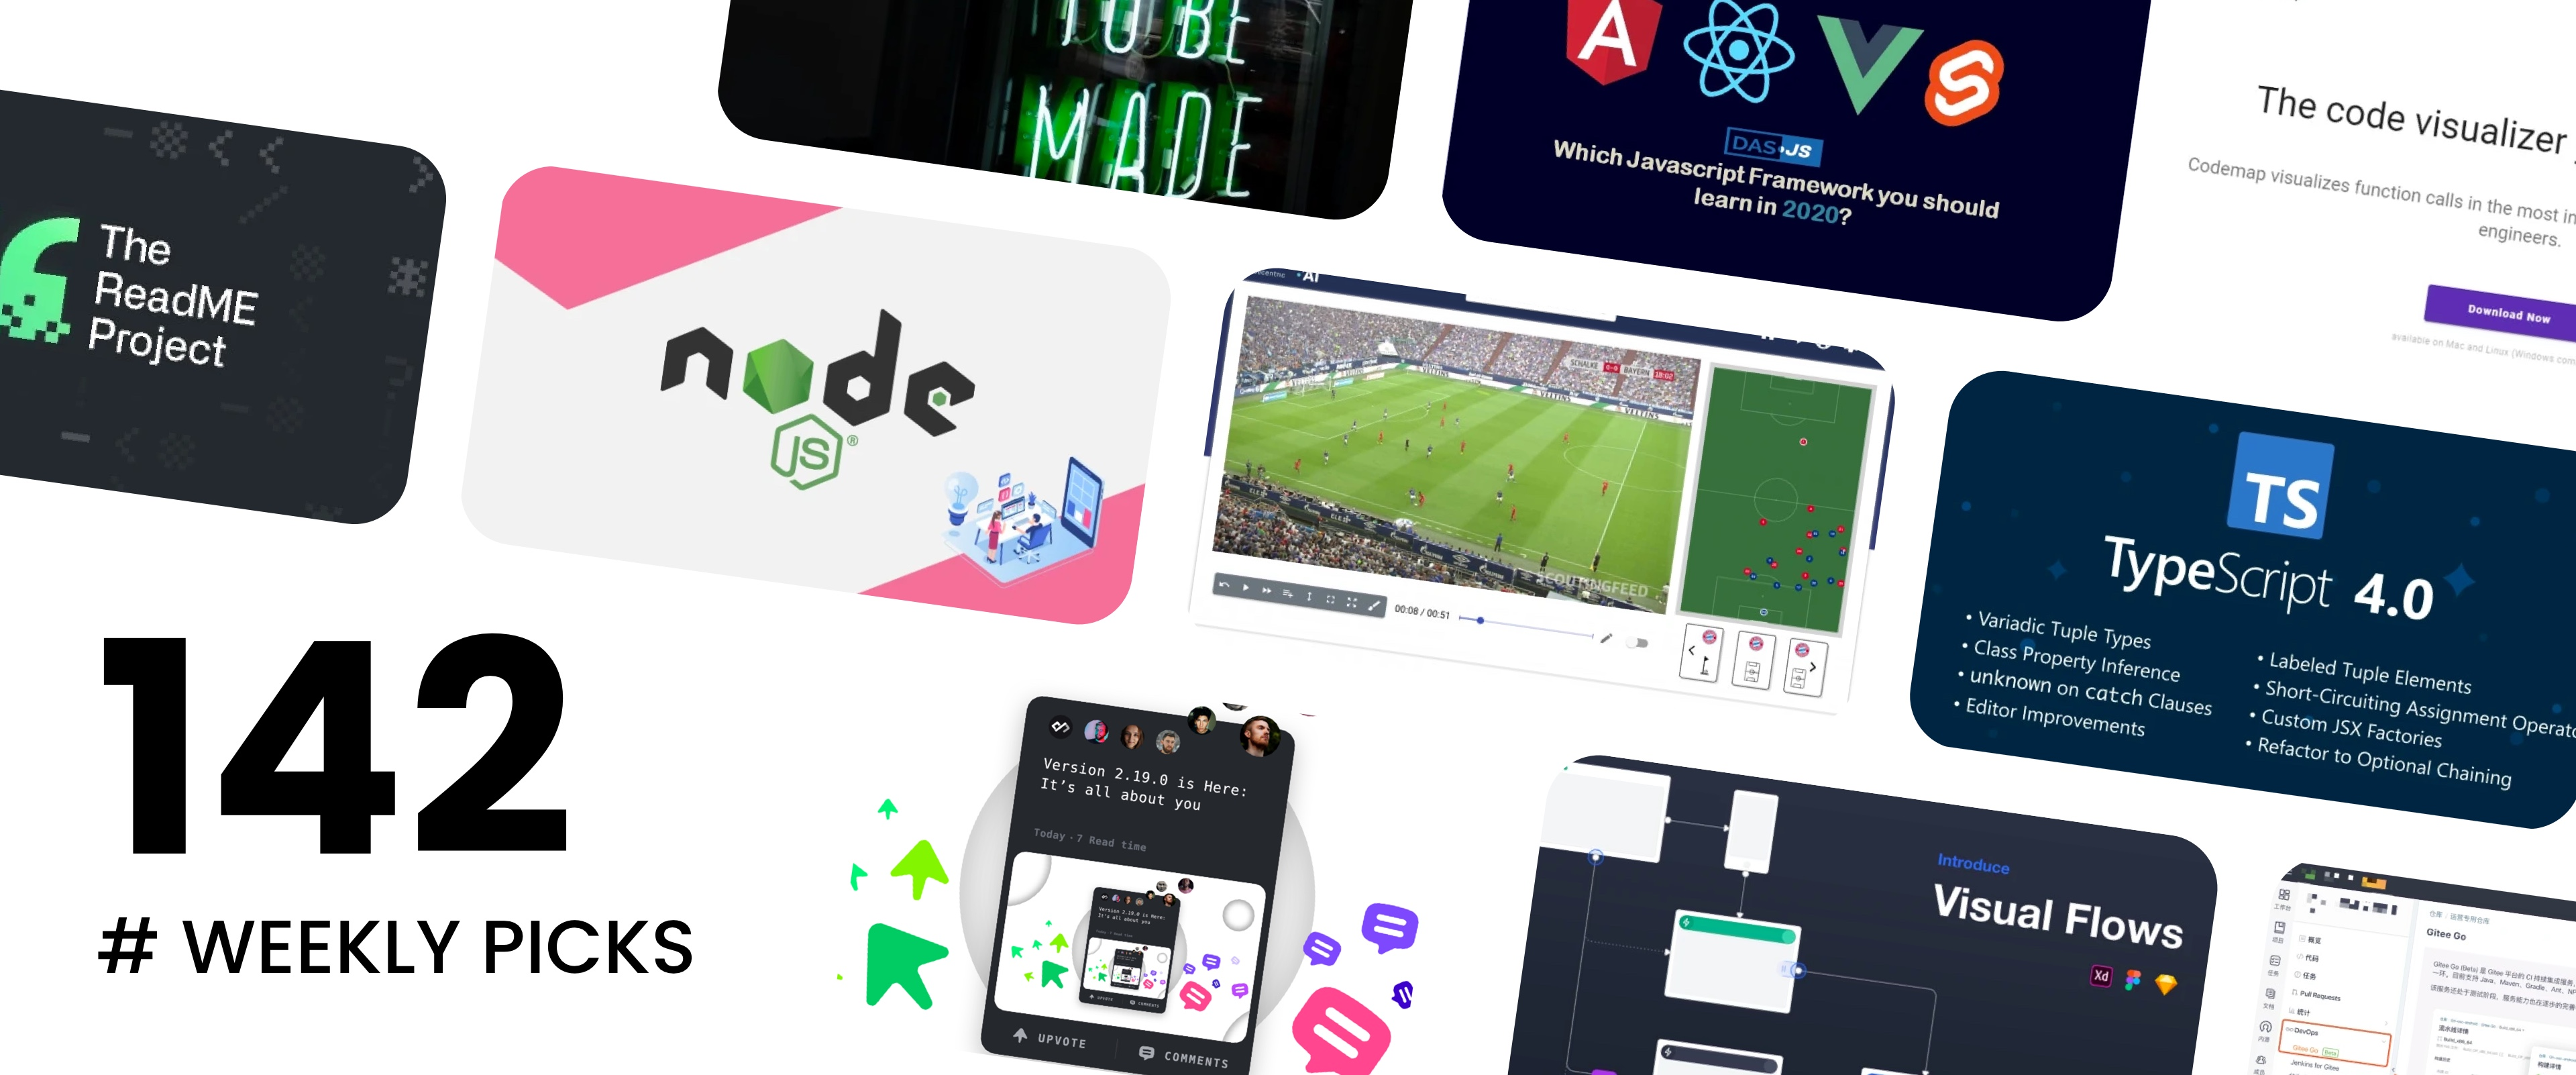 🔥 What's Hot in Web Development? — Weekly Picks #142